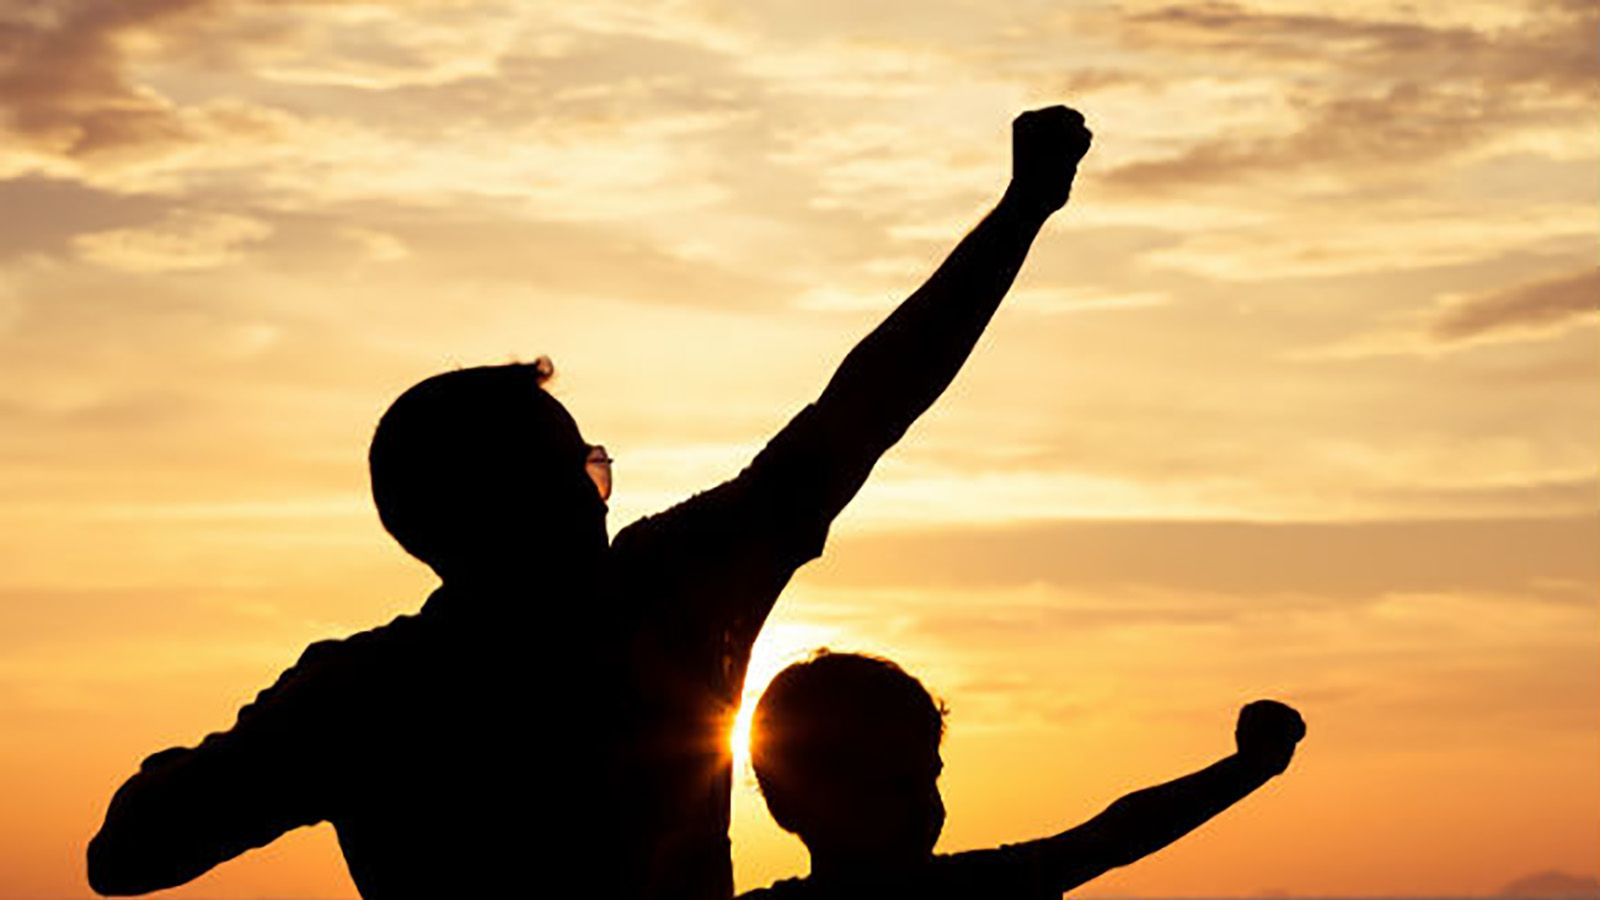 Silhouettes of a man and child with one arm raised into the air banner image